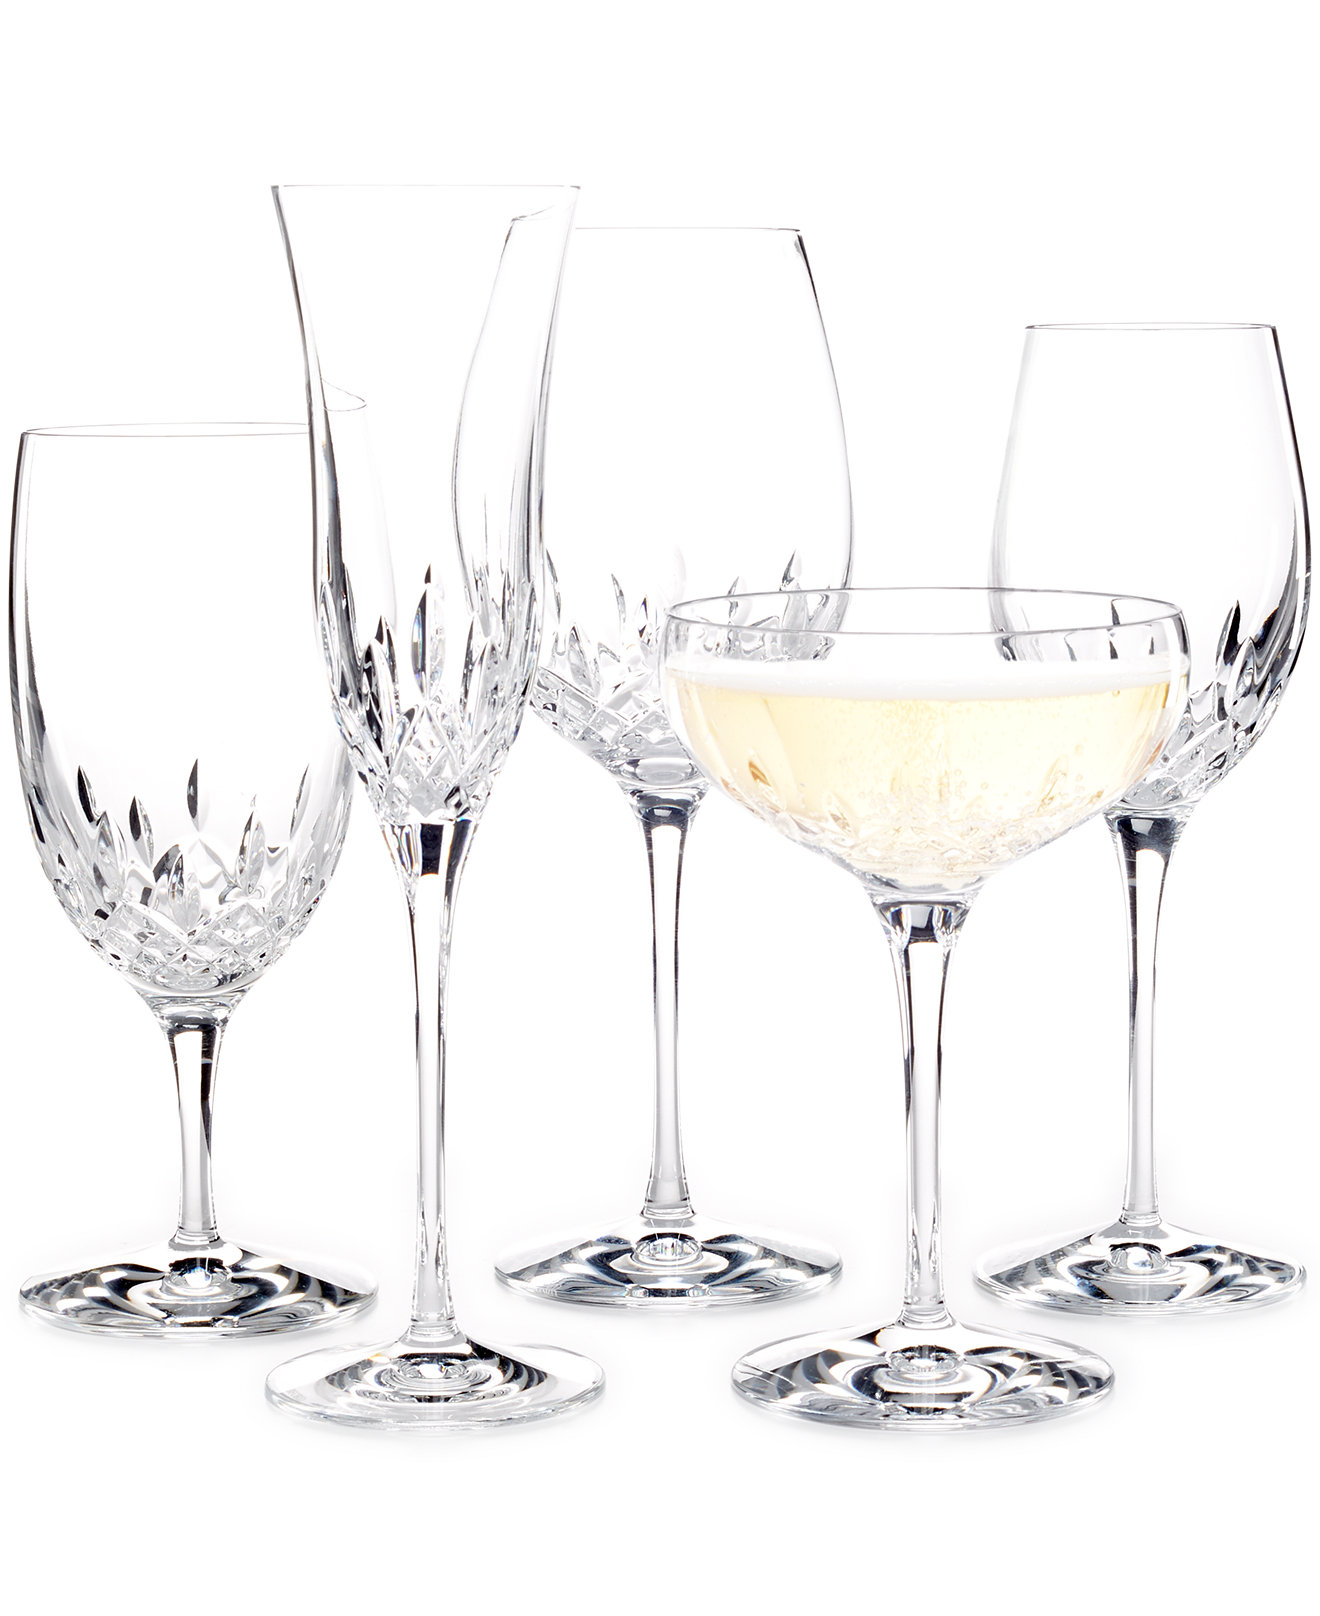 Sophisticated waterford crystal patterns for dining sets ideas with waterford crystal glass patterns